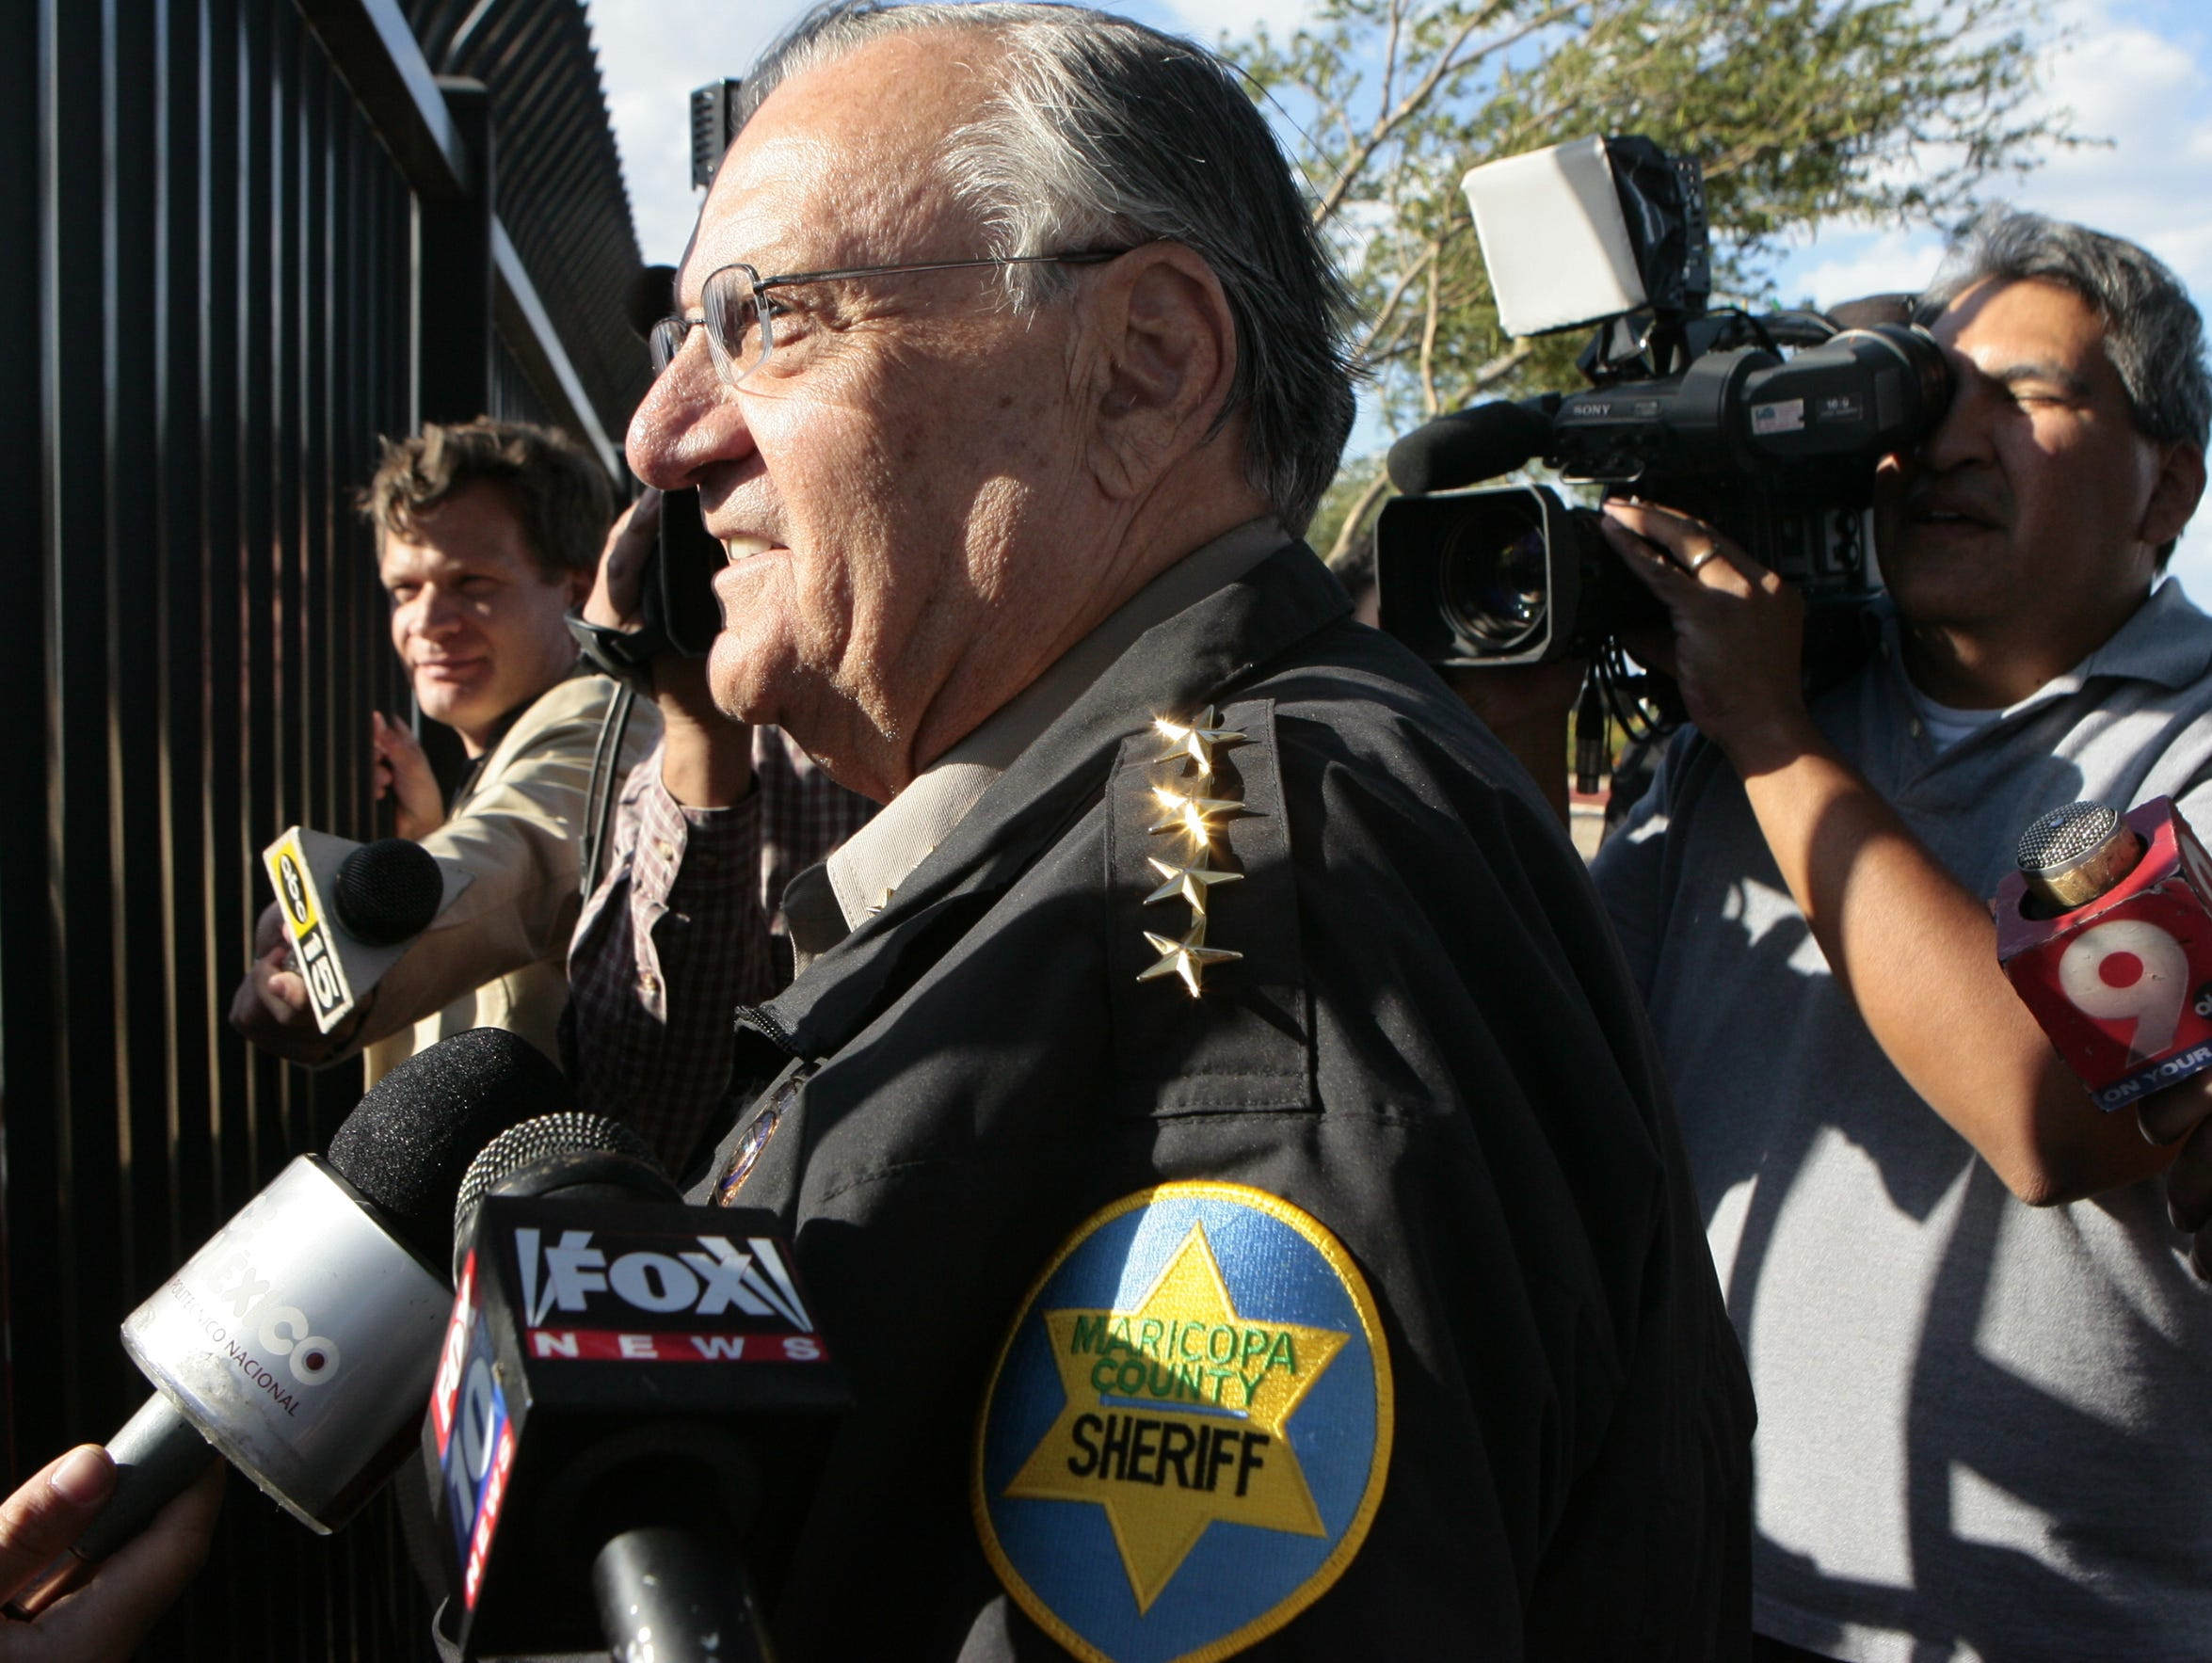 Arpaio speaks to protesters after a 2010 press conference